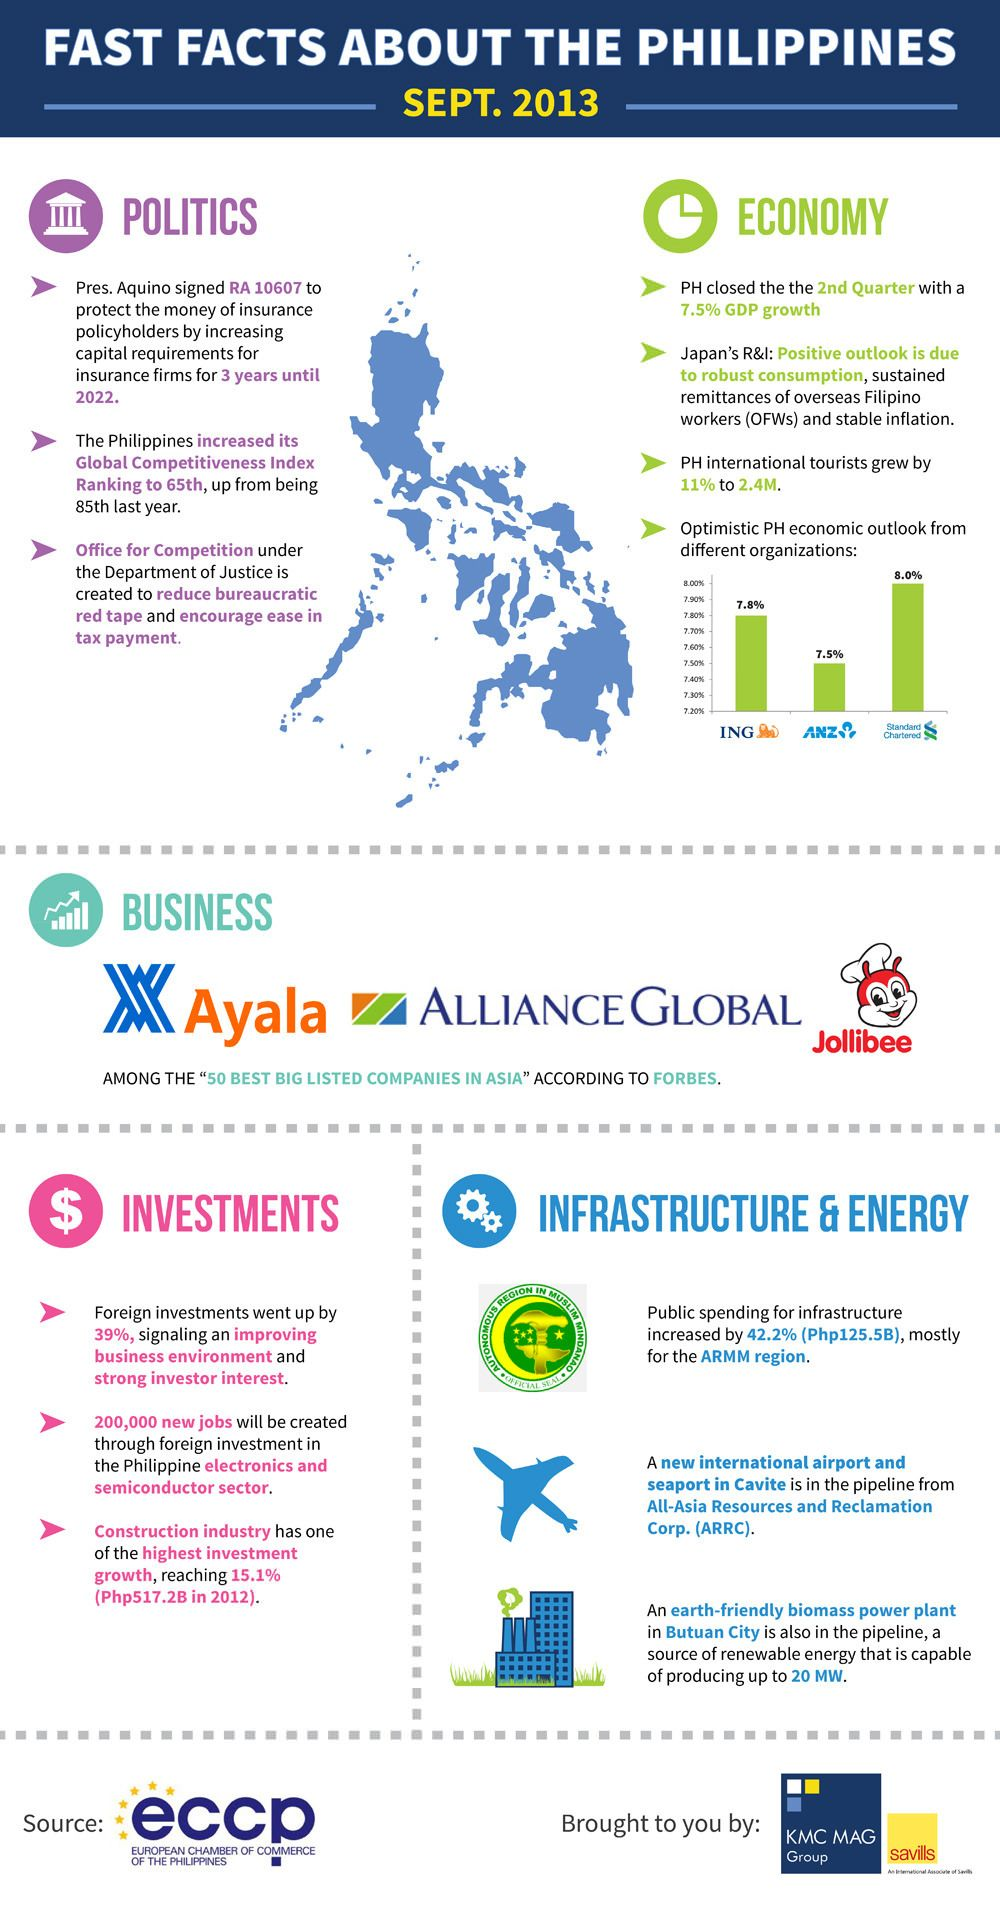 Fast Facts About The Philippines [INFOGRAPHIC] facts